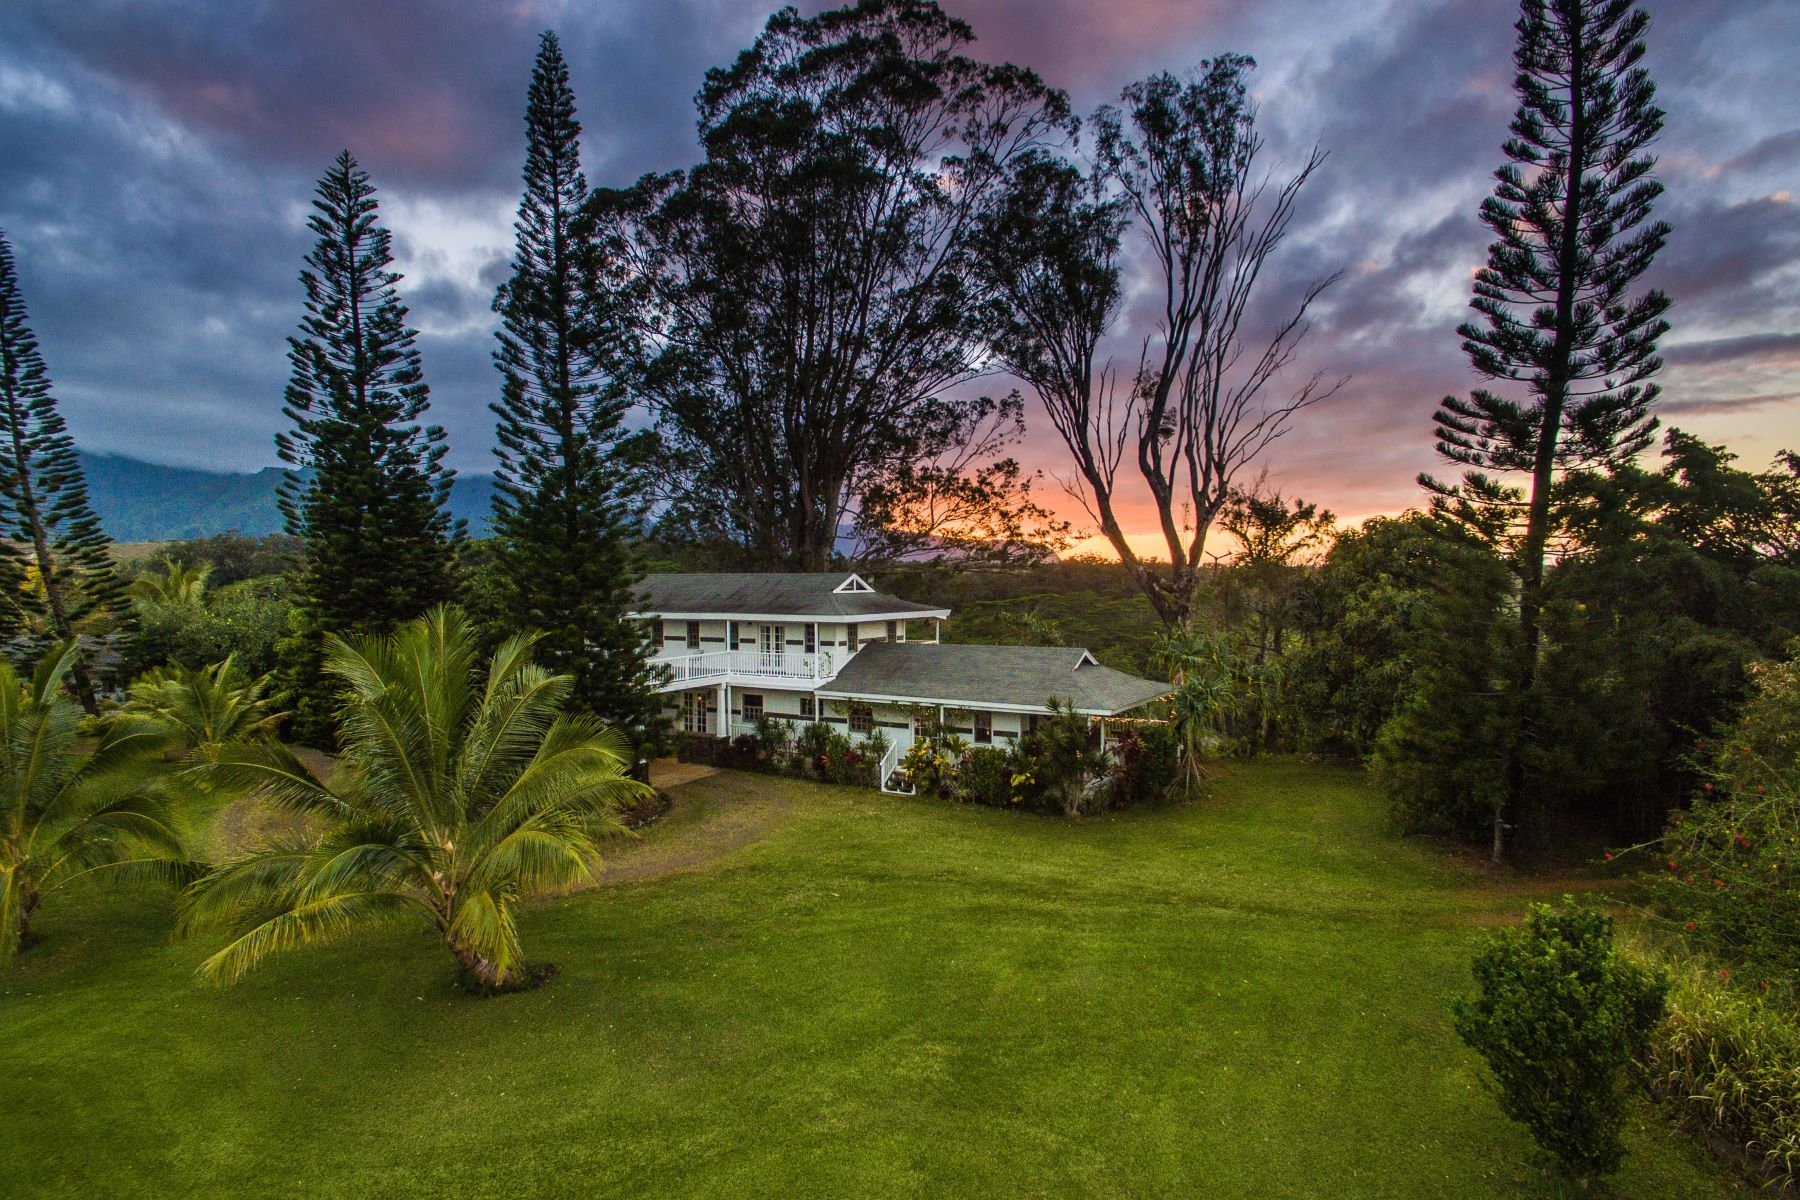 Einfamilienhaus für Verkauf beim Kauai 5-Acre Multi-Family Estate with Mountain, Waterfall, Sunset & Valley Views 5150 Kahiliholo Road #A Kilauea, Hawaii 96754 Vereinigte Staaten